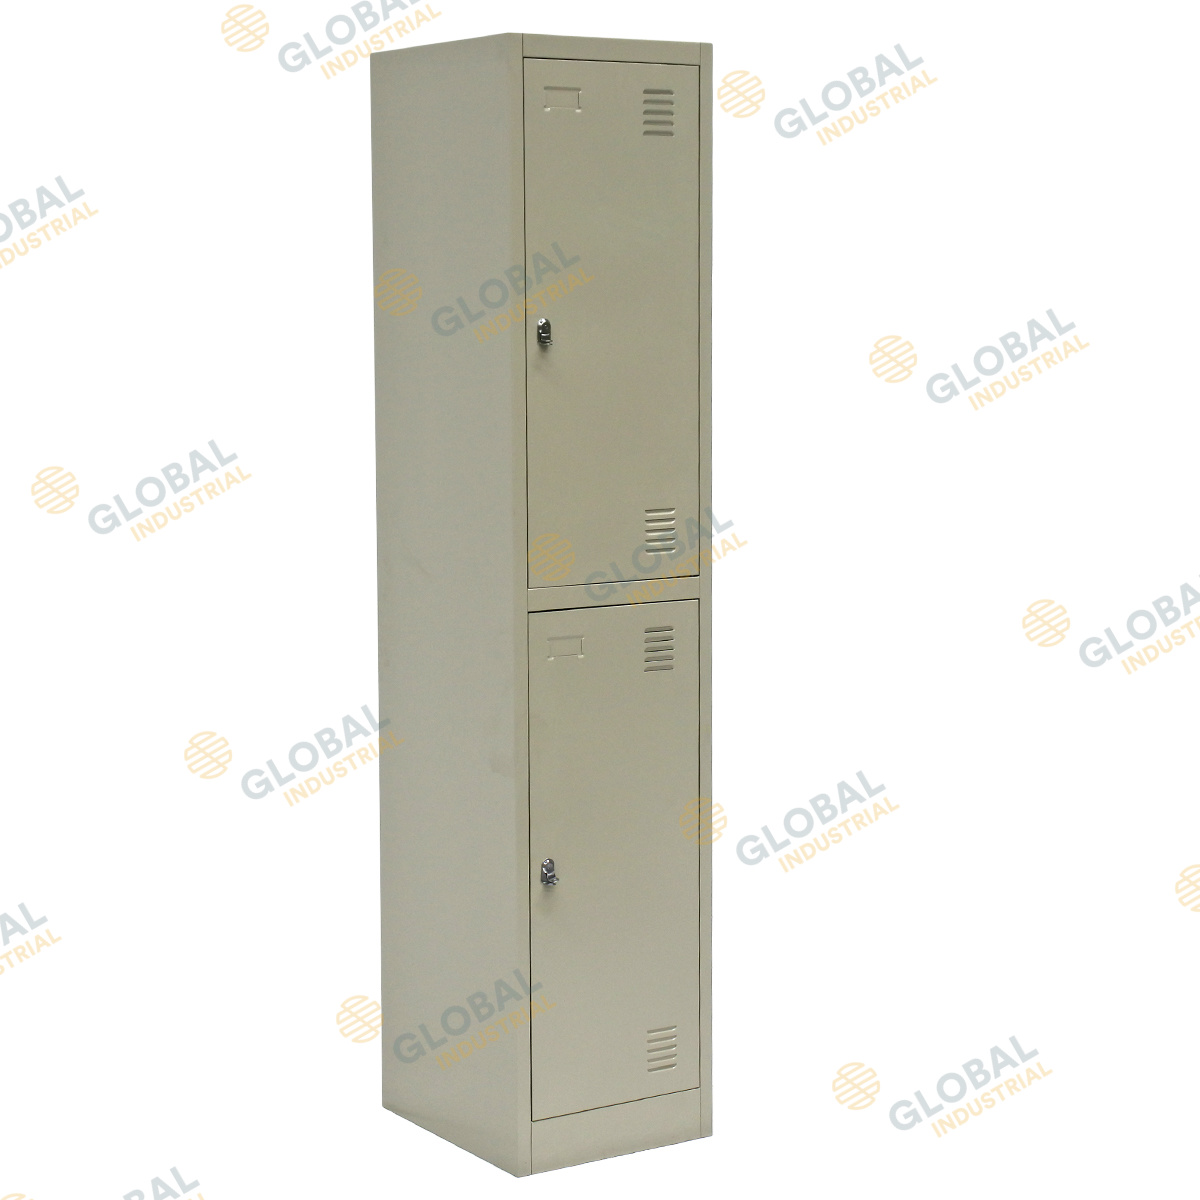 2 Door Single Locker